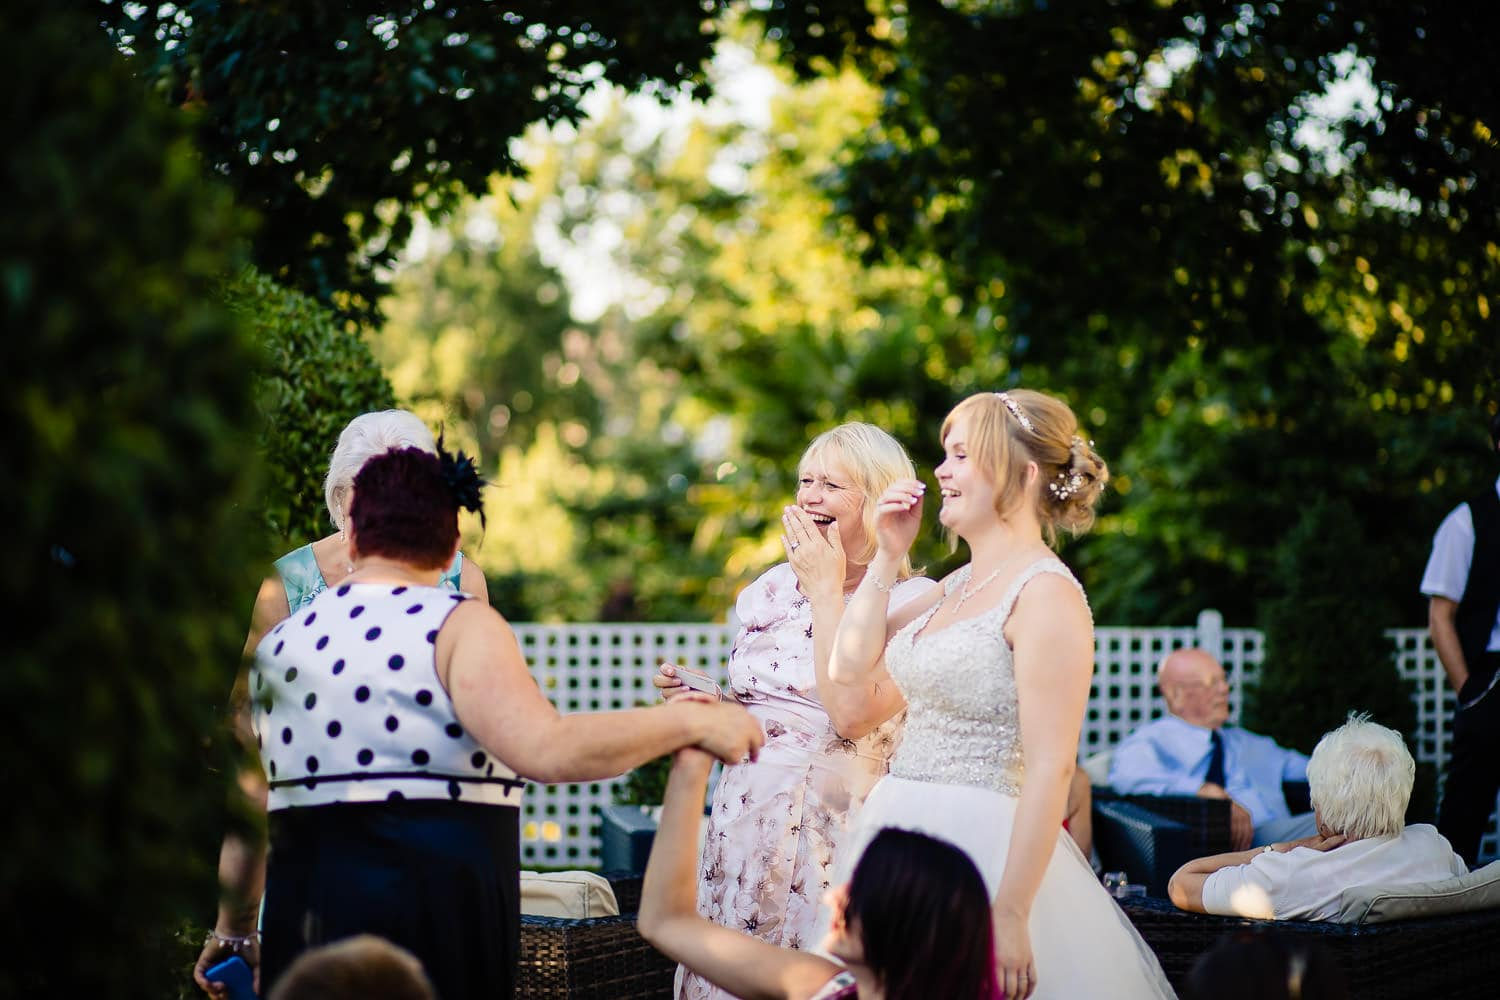 Warwick House Wedding Photography capures laughting and smiling warwickshire ladies